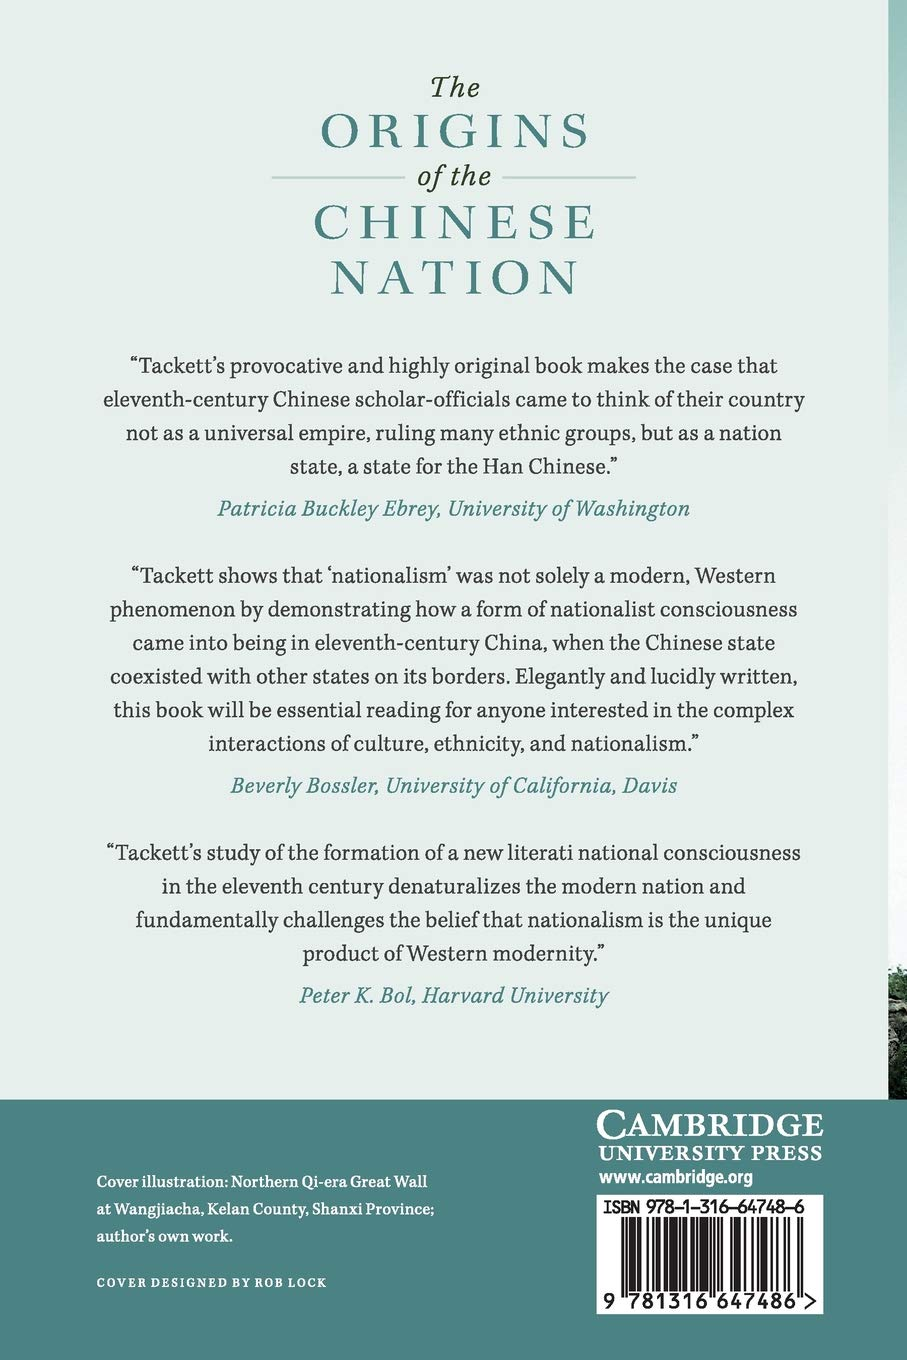 The Origins of the Chinese Nation: Song China and the Forging of an East  Asian World Order: Nicolas Tackett: 9781316647486: Amazon.com: Books